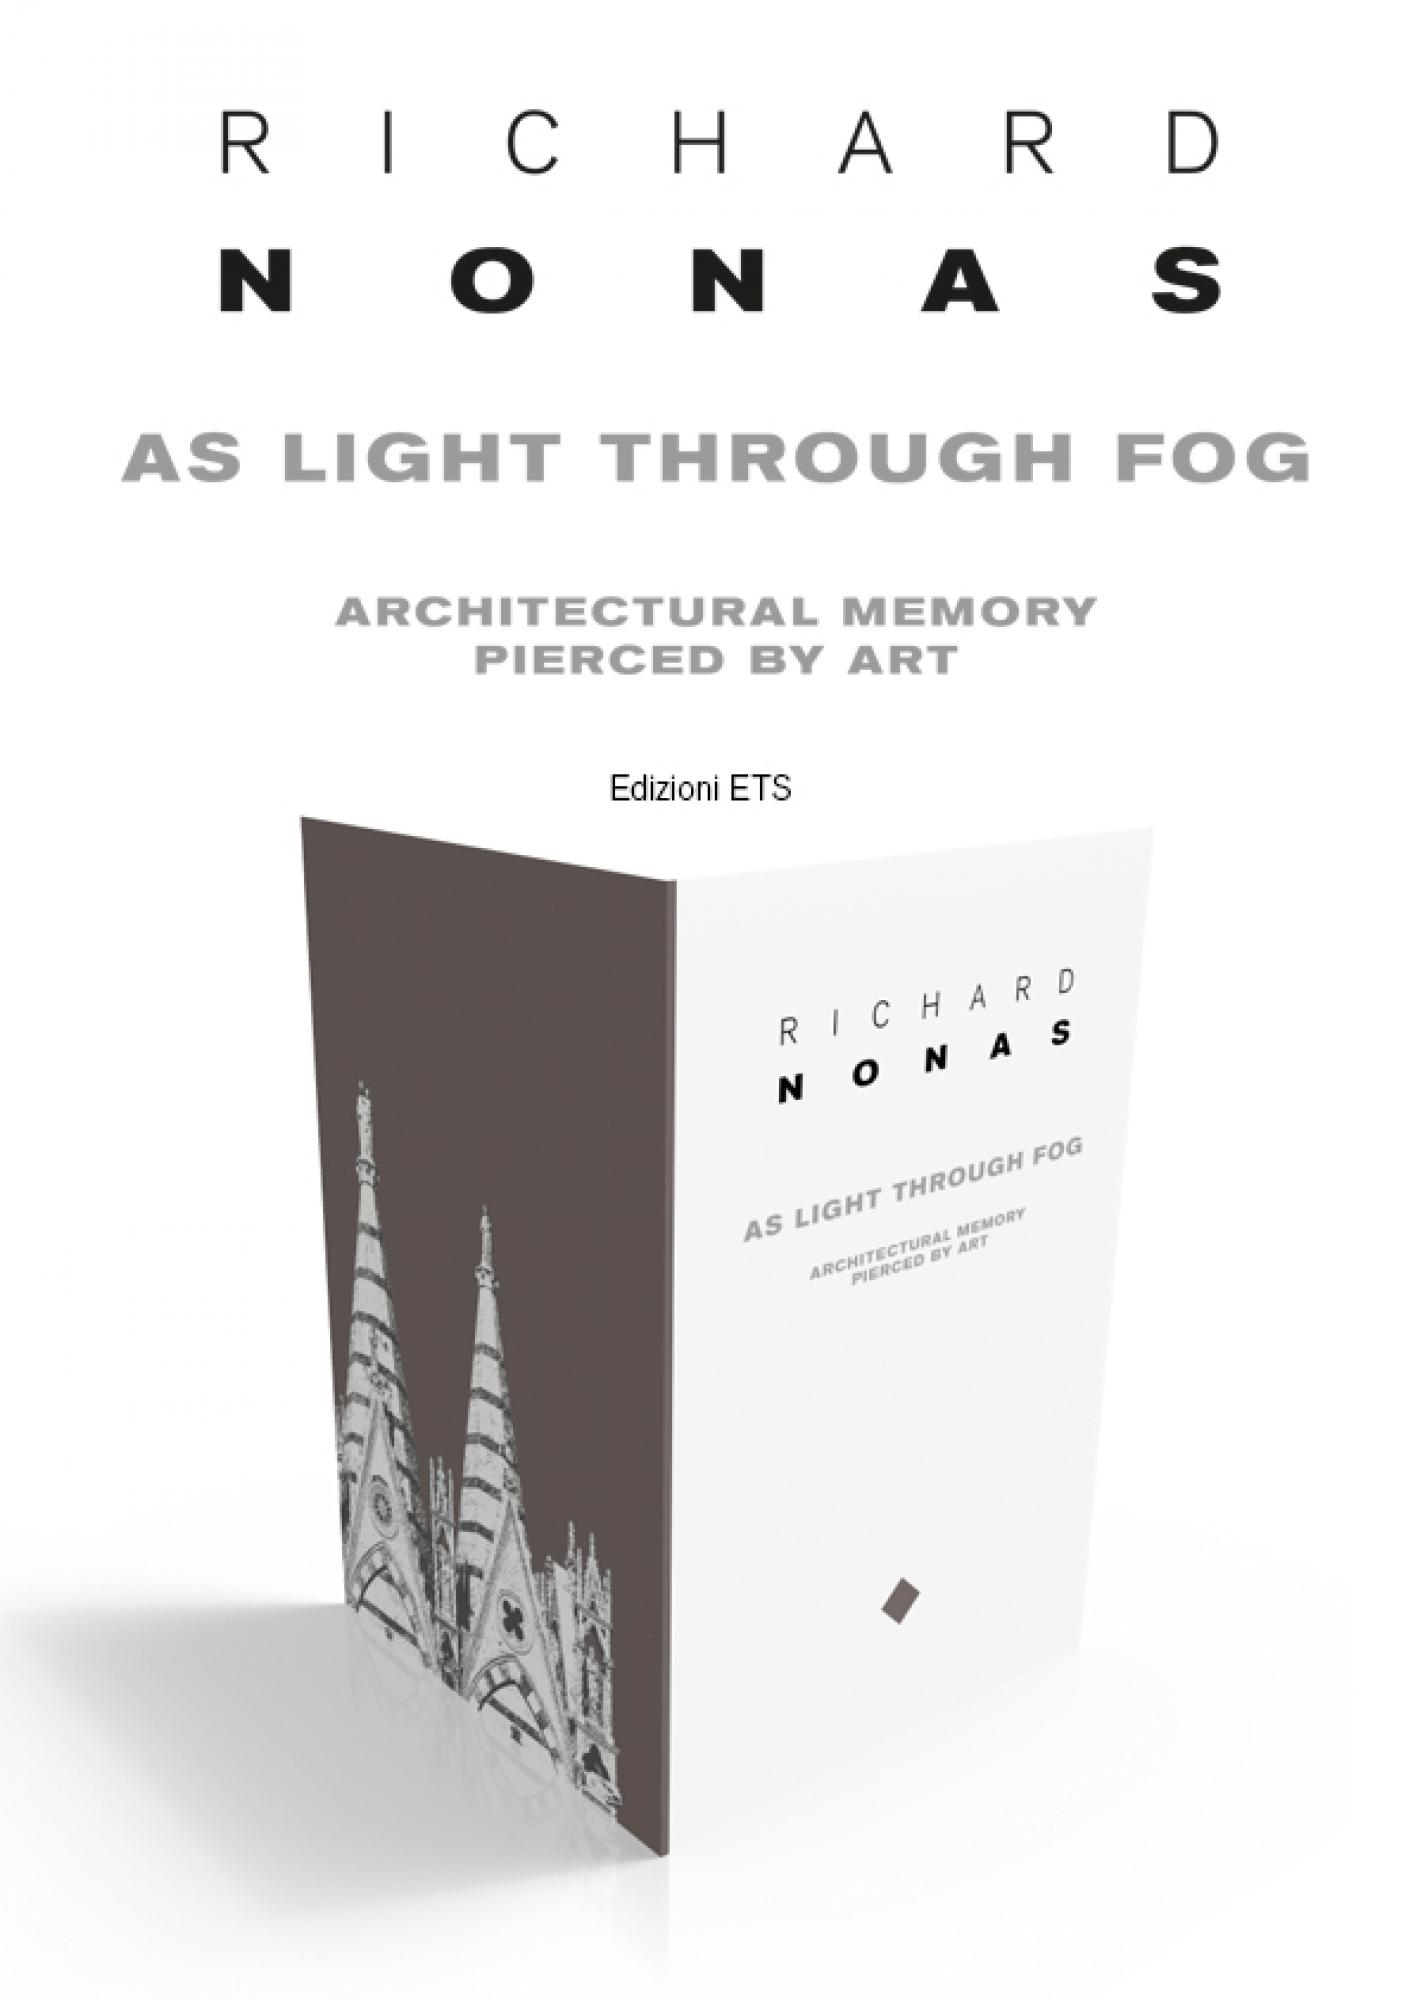 As light through fog.